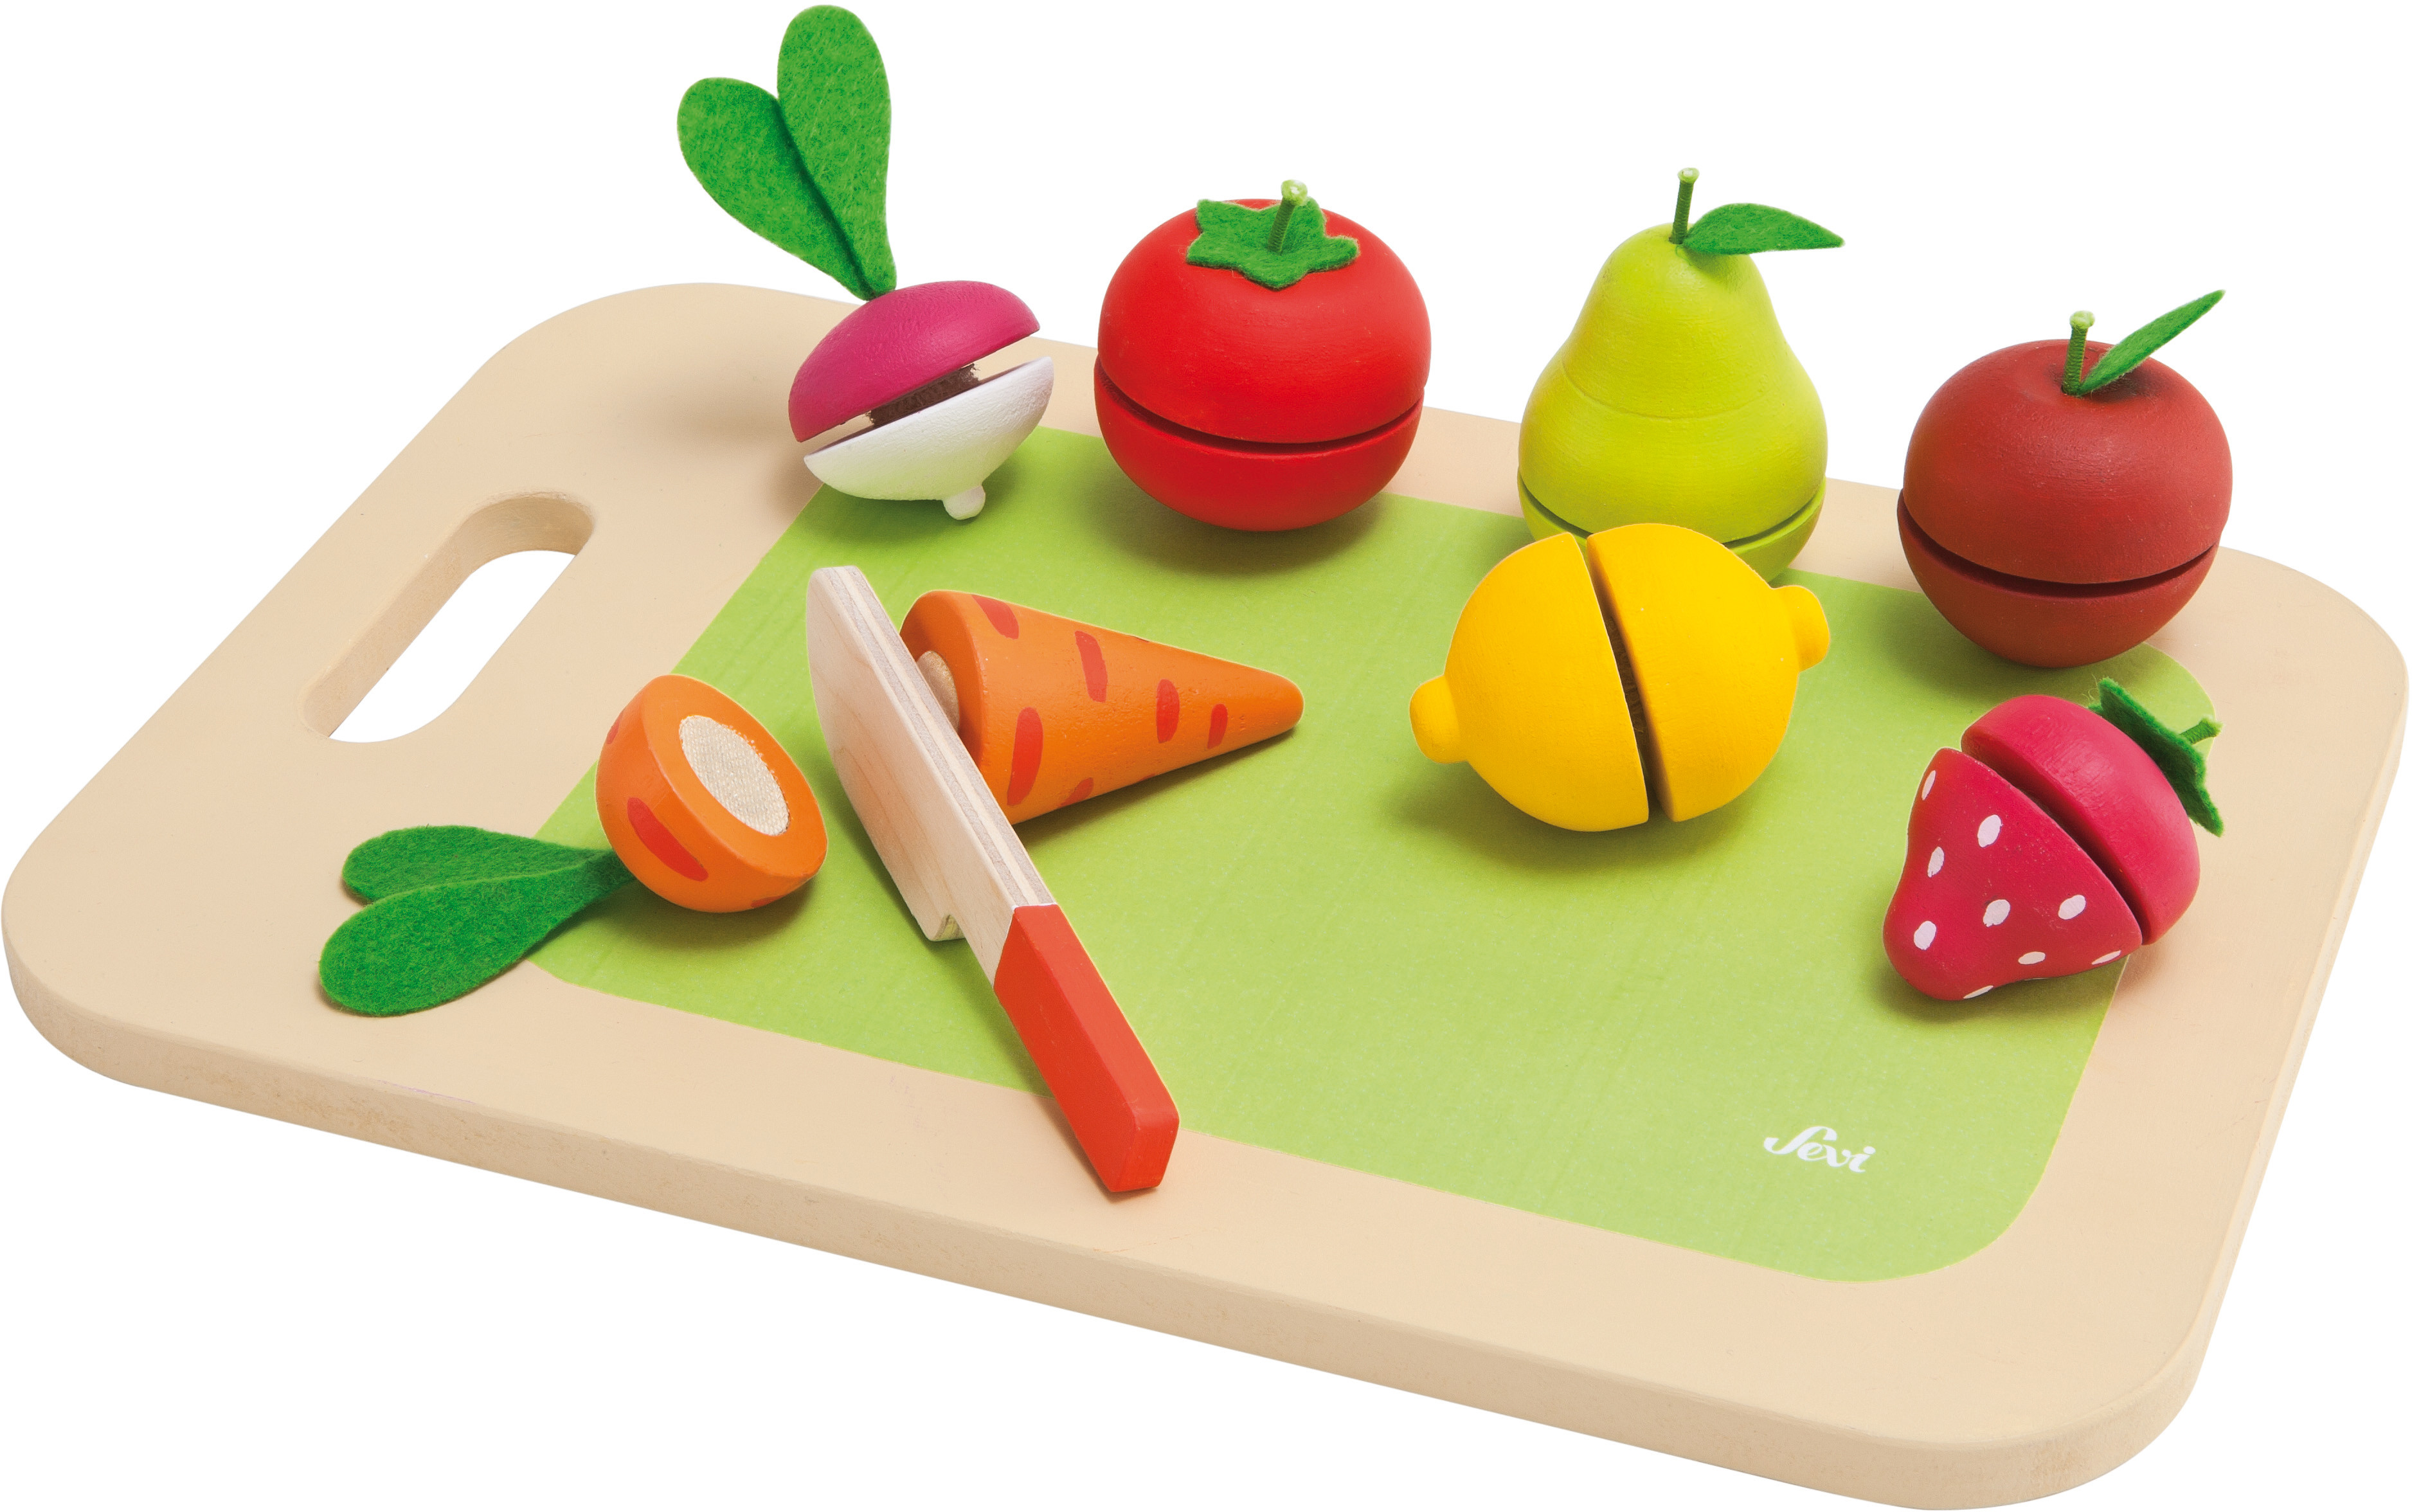 Chopping Board With Vegetables Sevi Chopping Board Fruits. Sevi Chopping  Board Fruits. Source Abuse Report